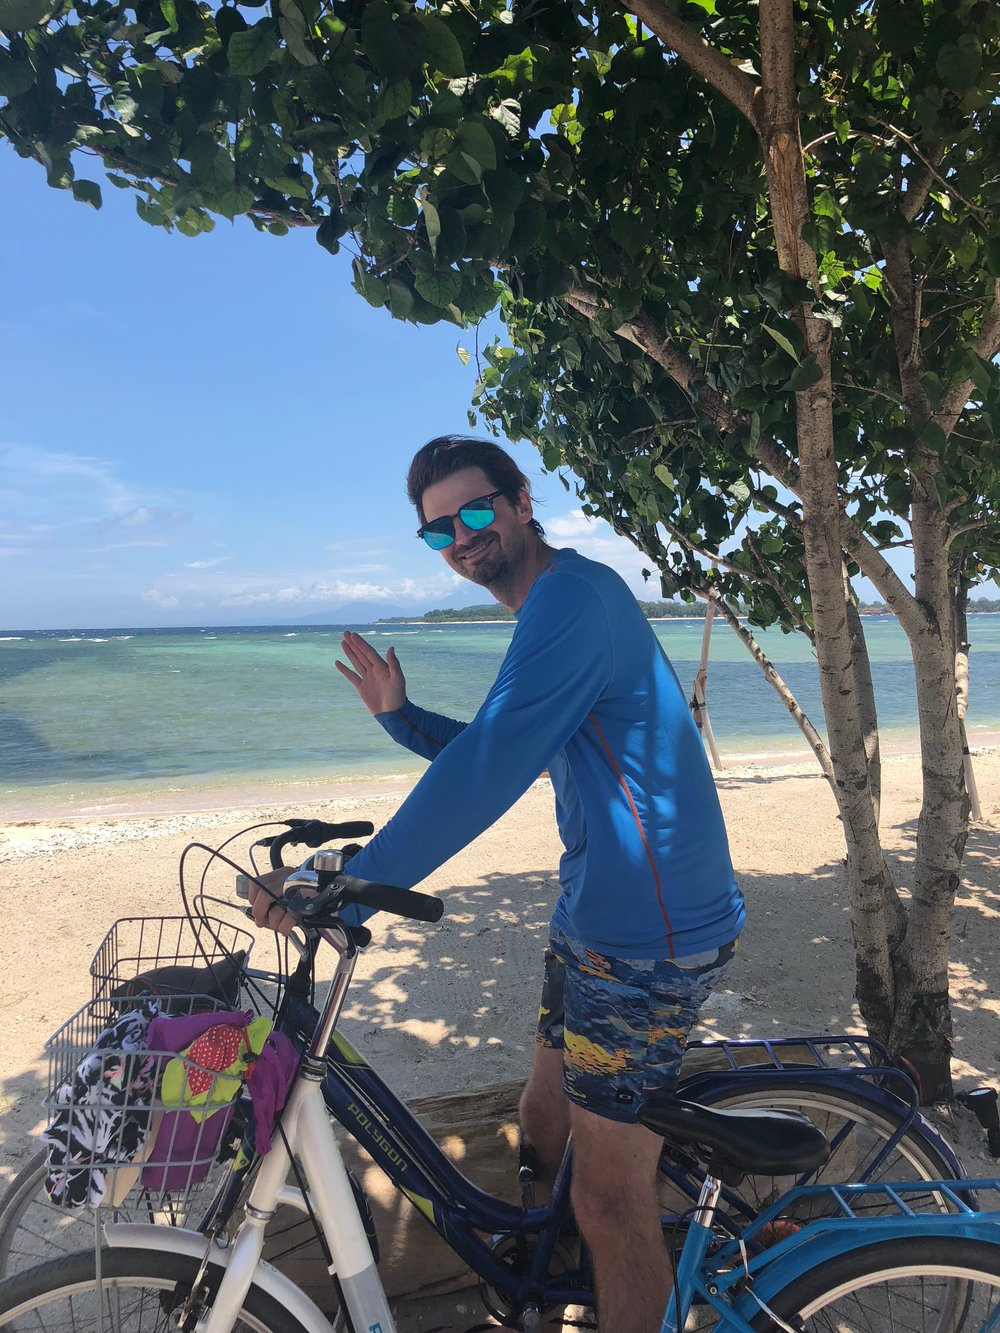 Matt beach biking